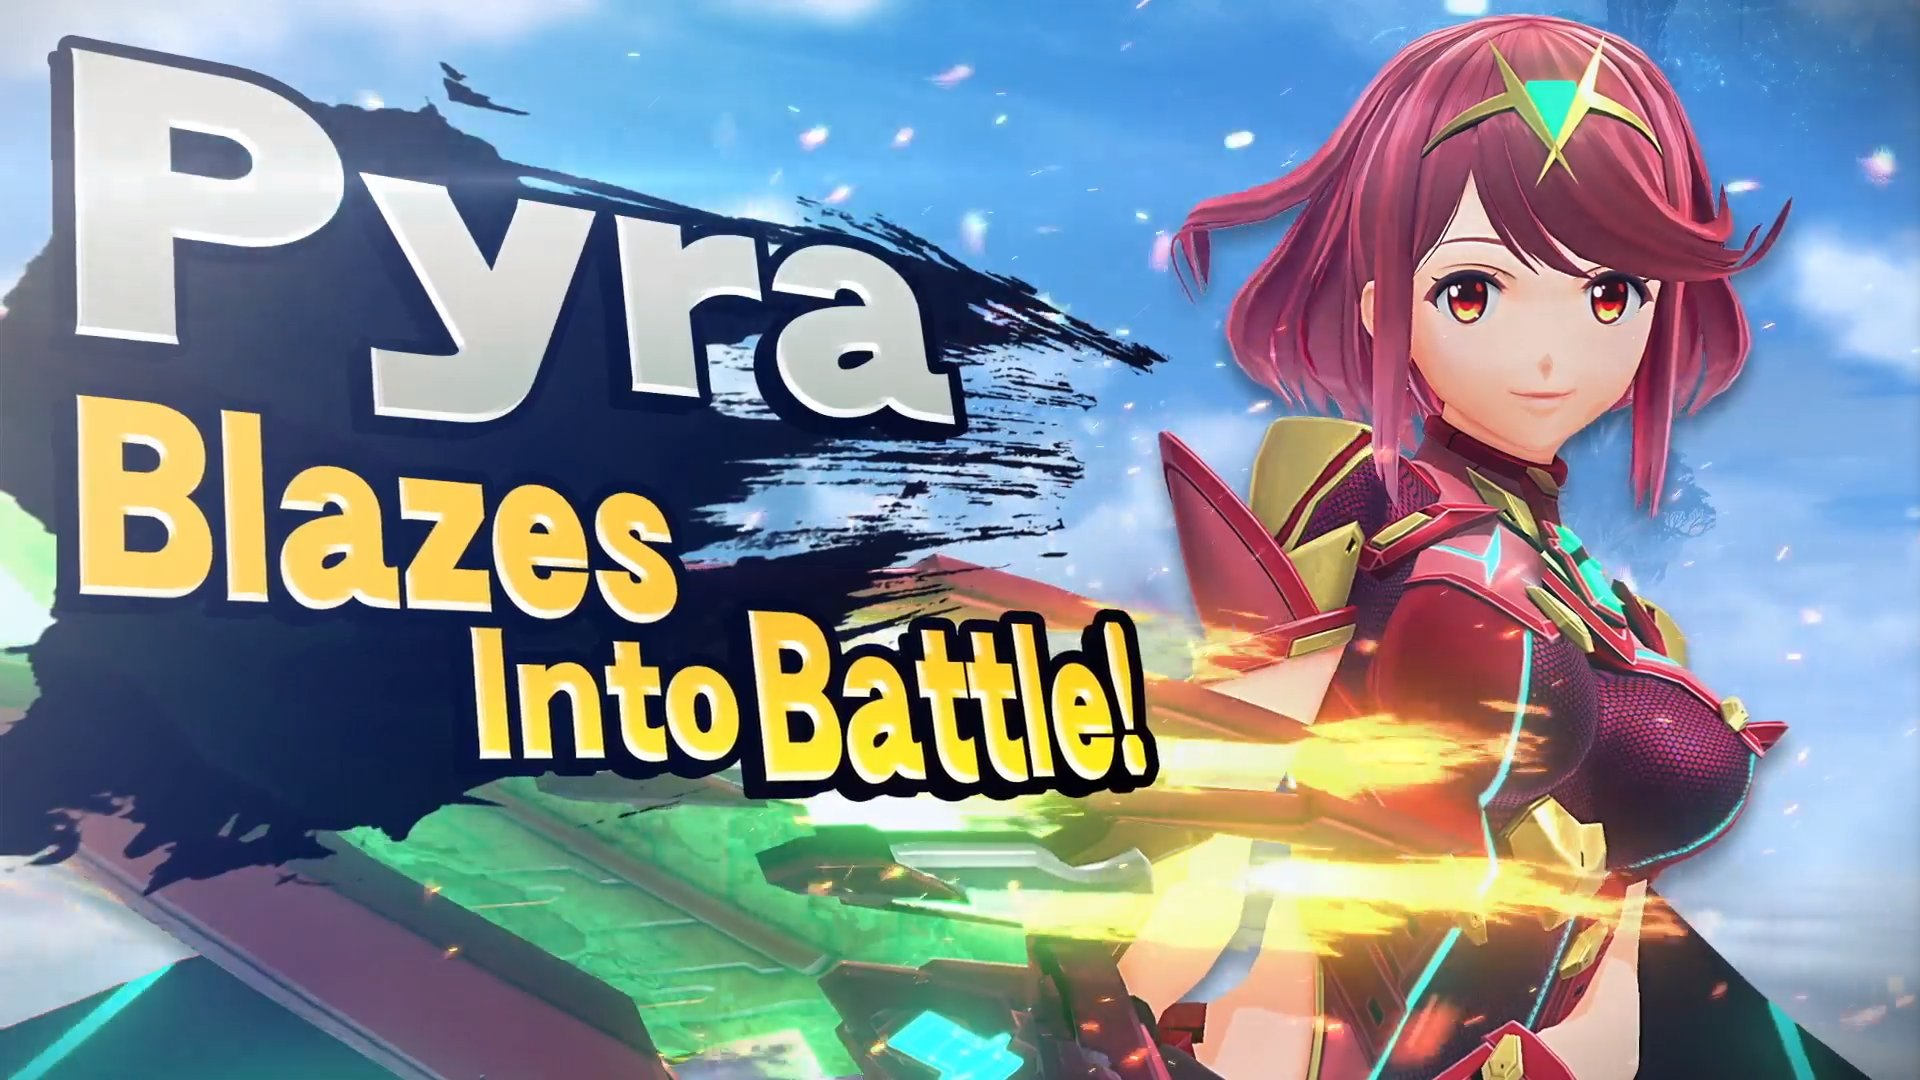 Pyra Smash Ultimate Cover